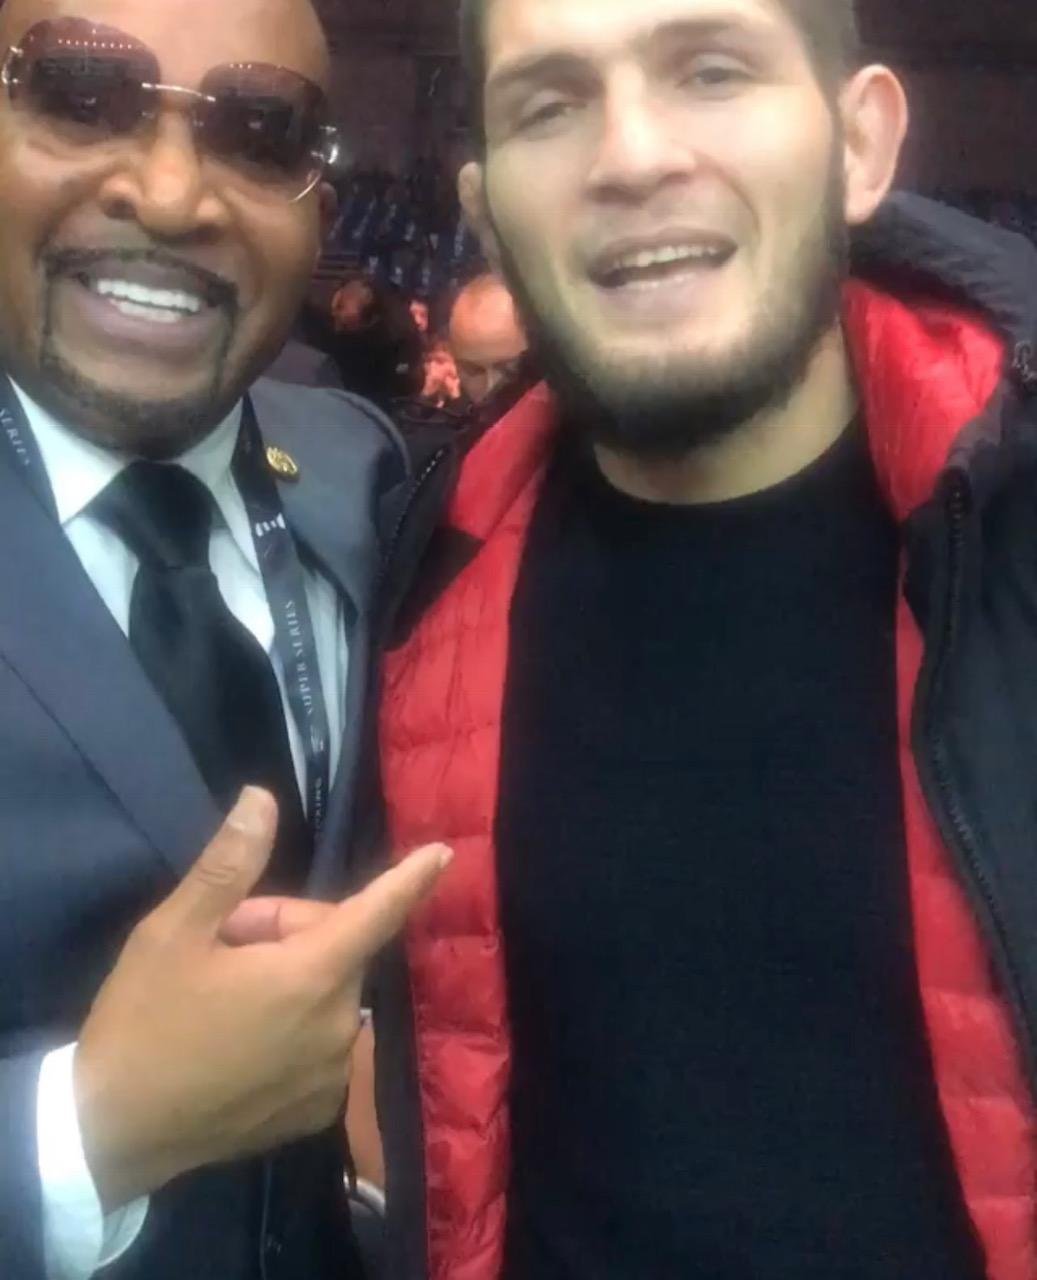 Khabib Nurmagomedov has called out Floyd Mayweather after beating Conor McGregor